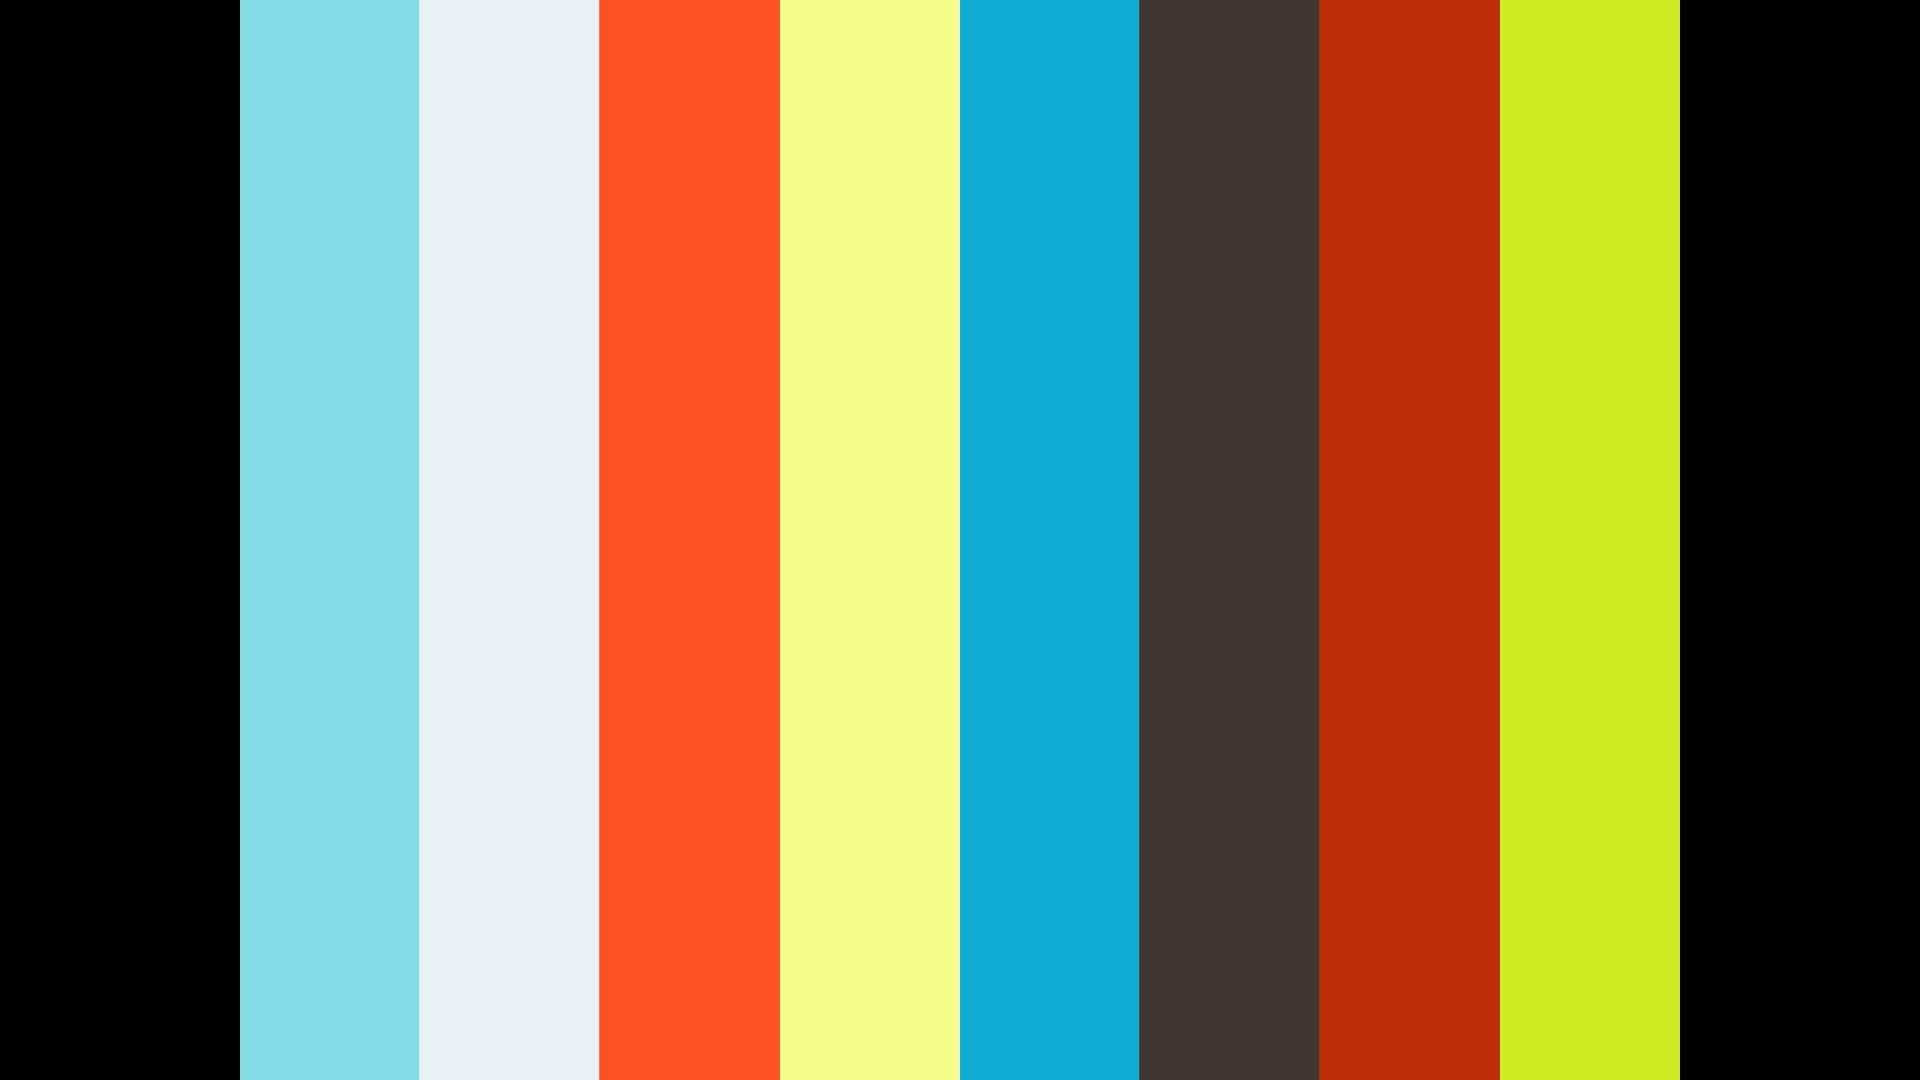 Introduction of Ursula Renz by Astrid Deuber-Mankowsky [2, 1]